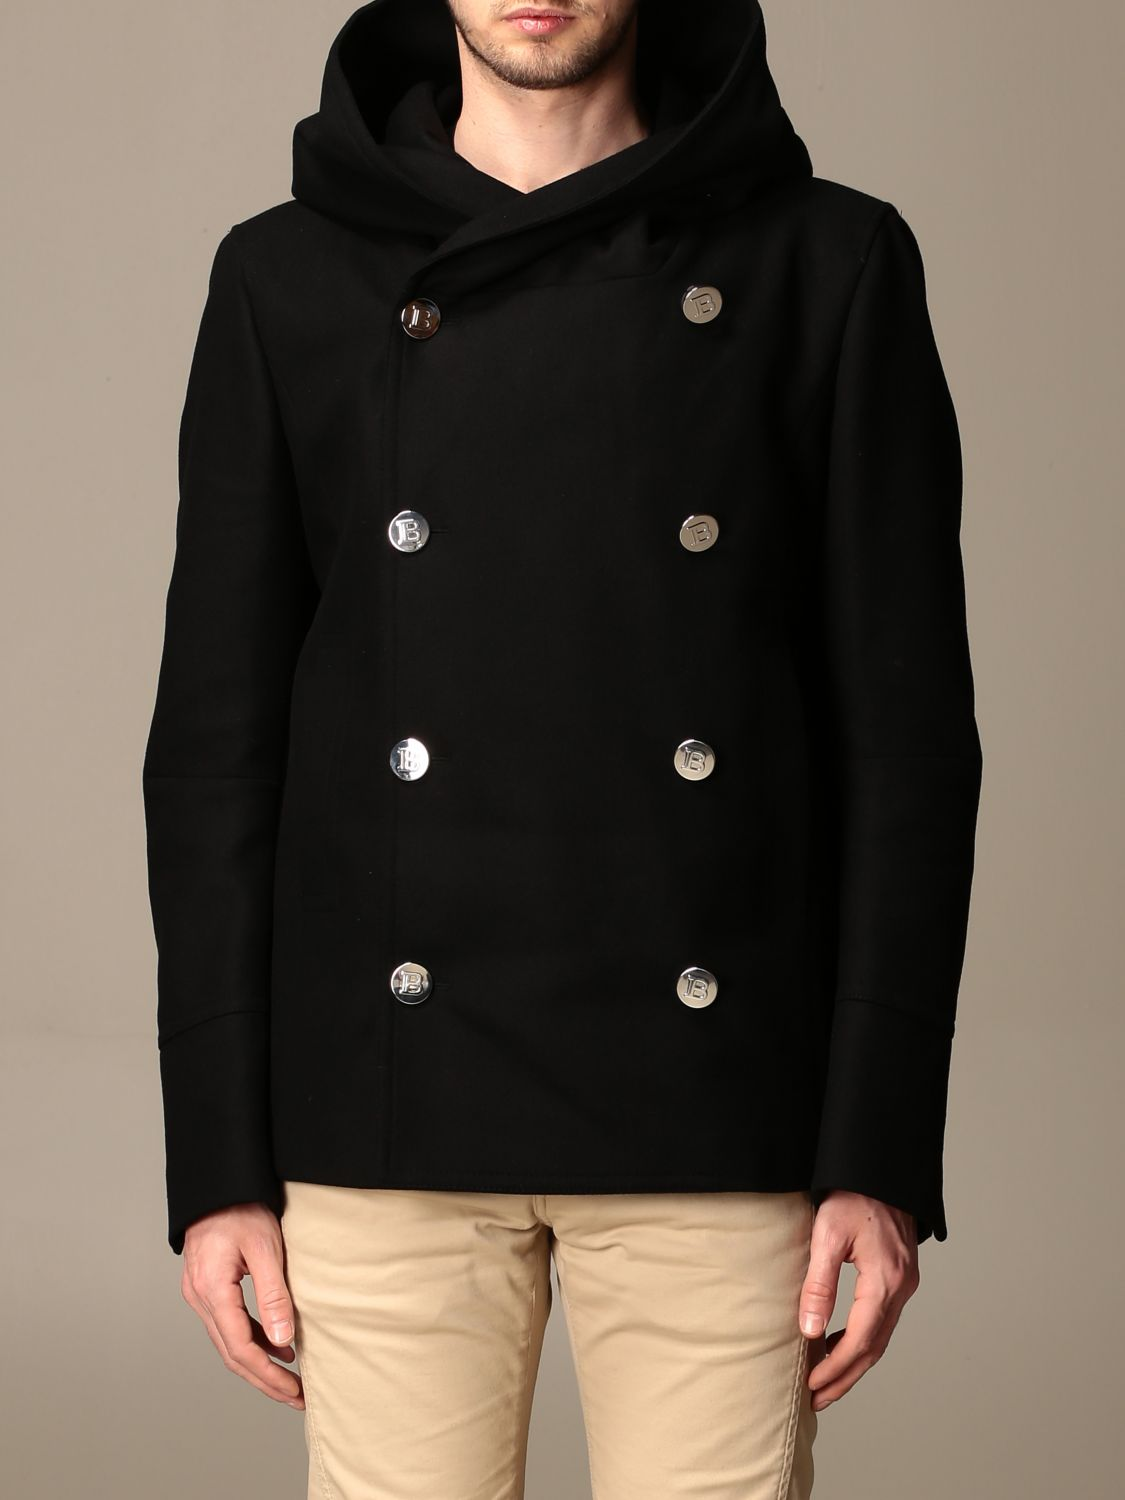 Coat Balmain: Coat men Balmain black 1